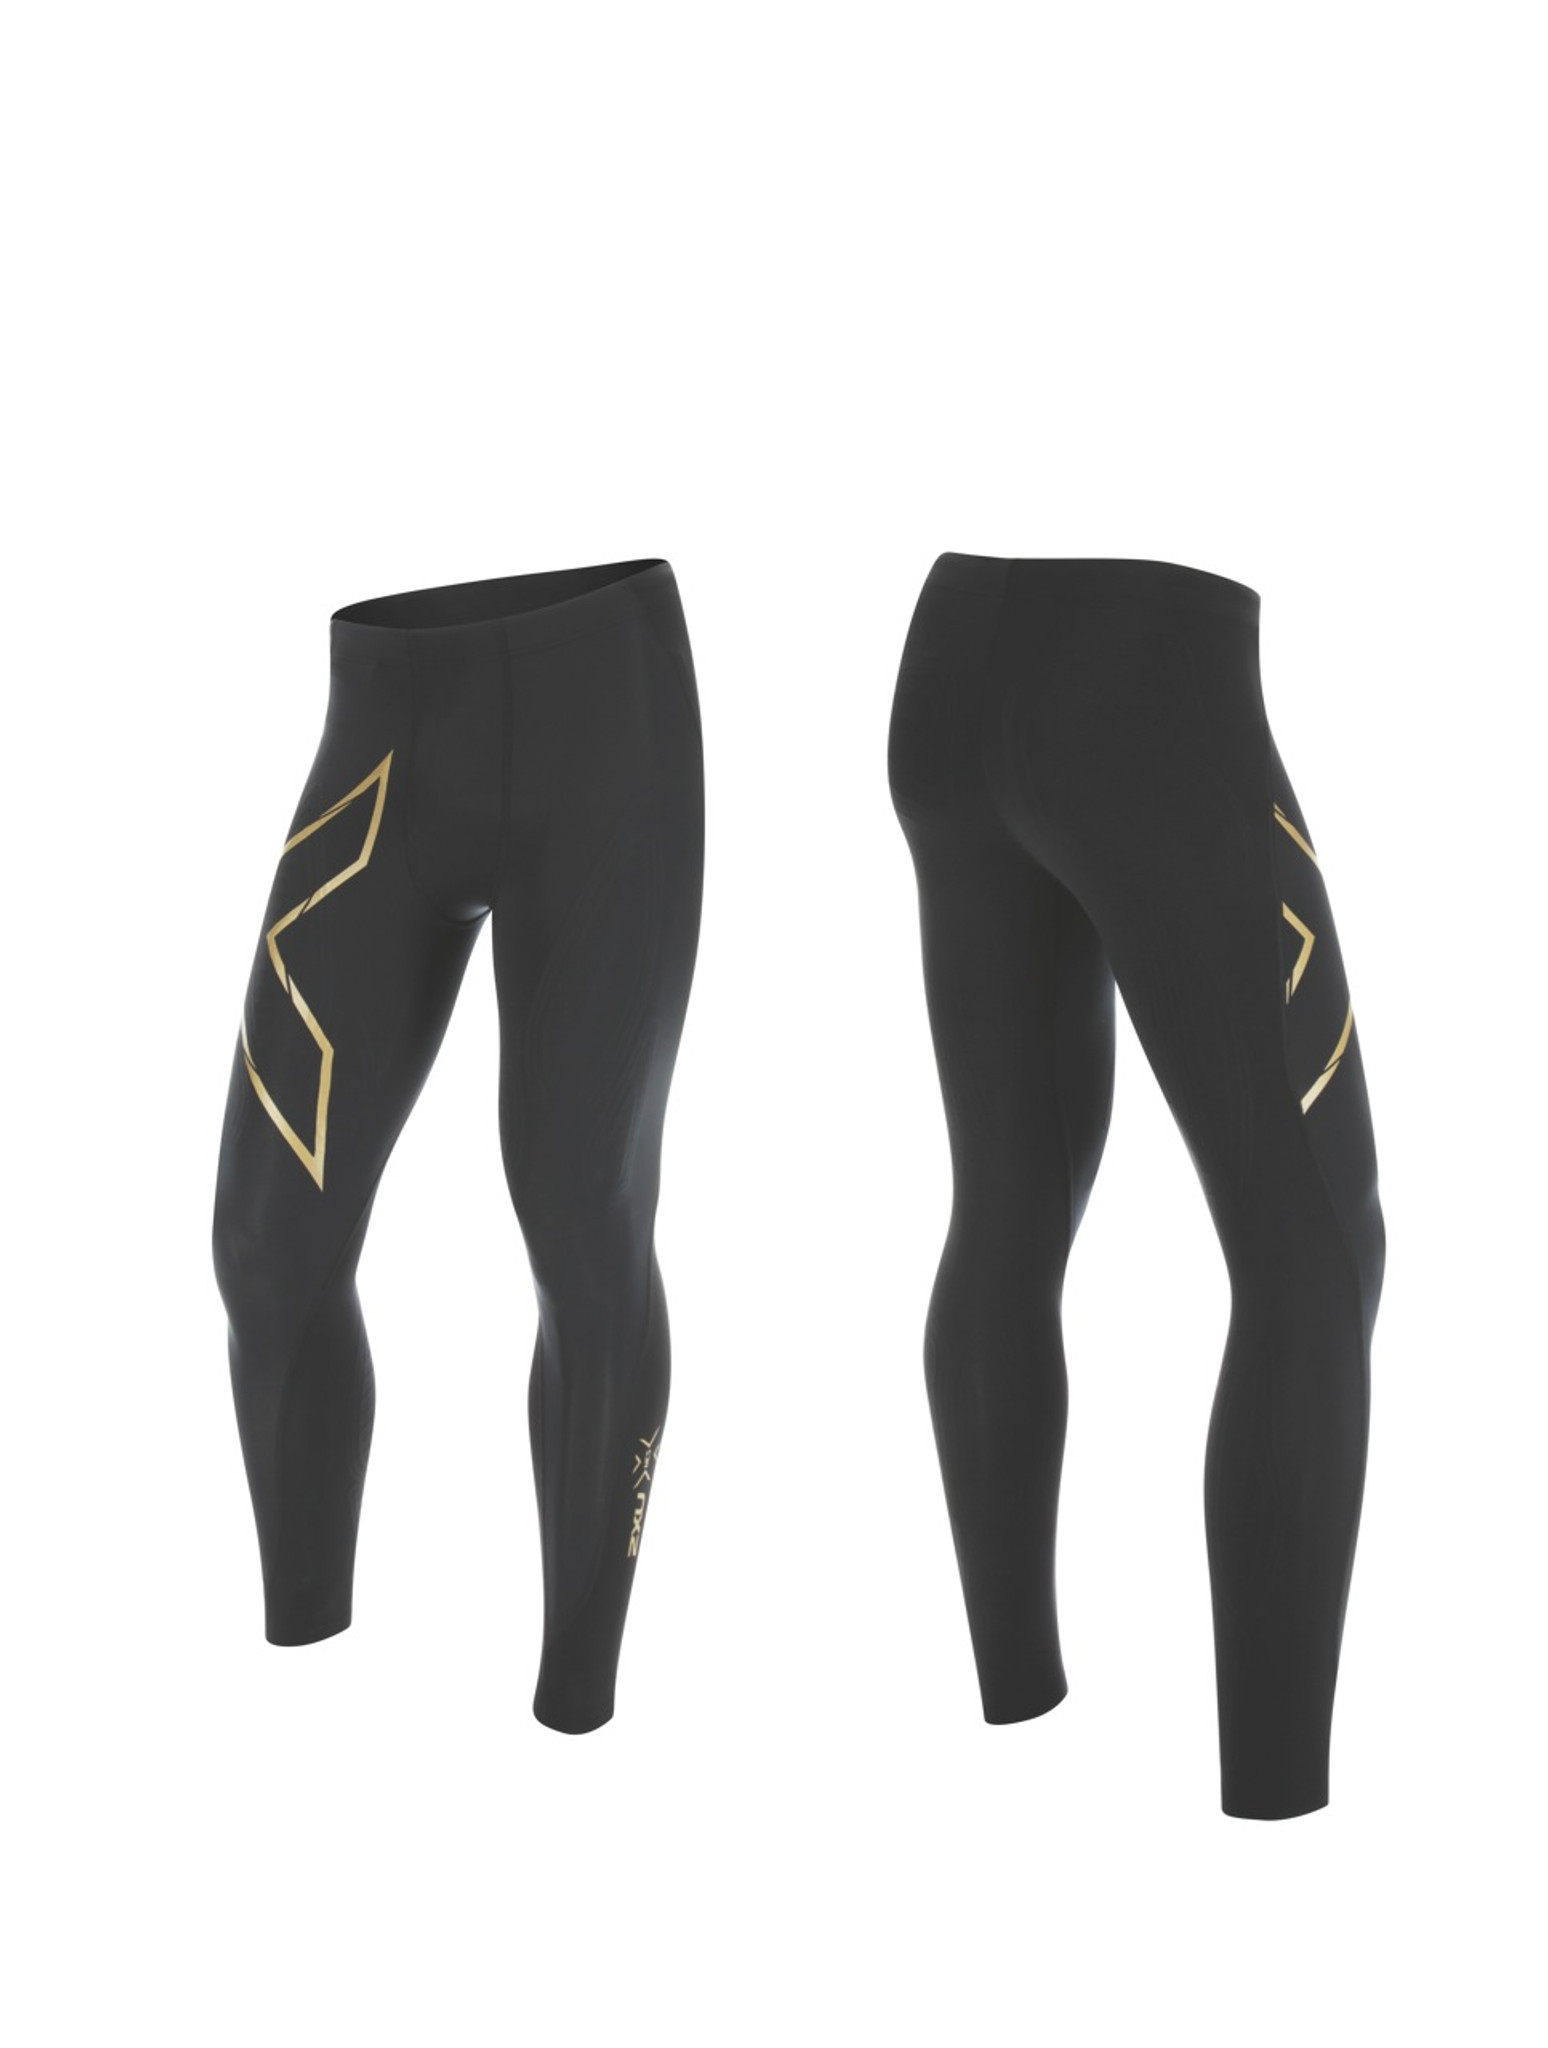 2576535932e2d 2XU MCS All Sport Comp Tights - MyTriathlon